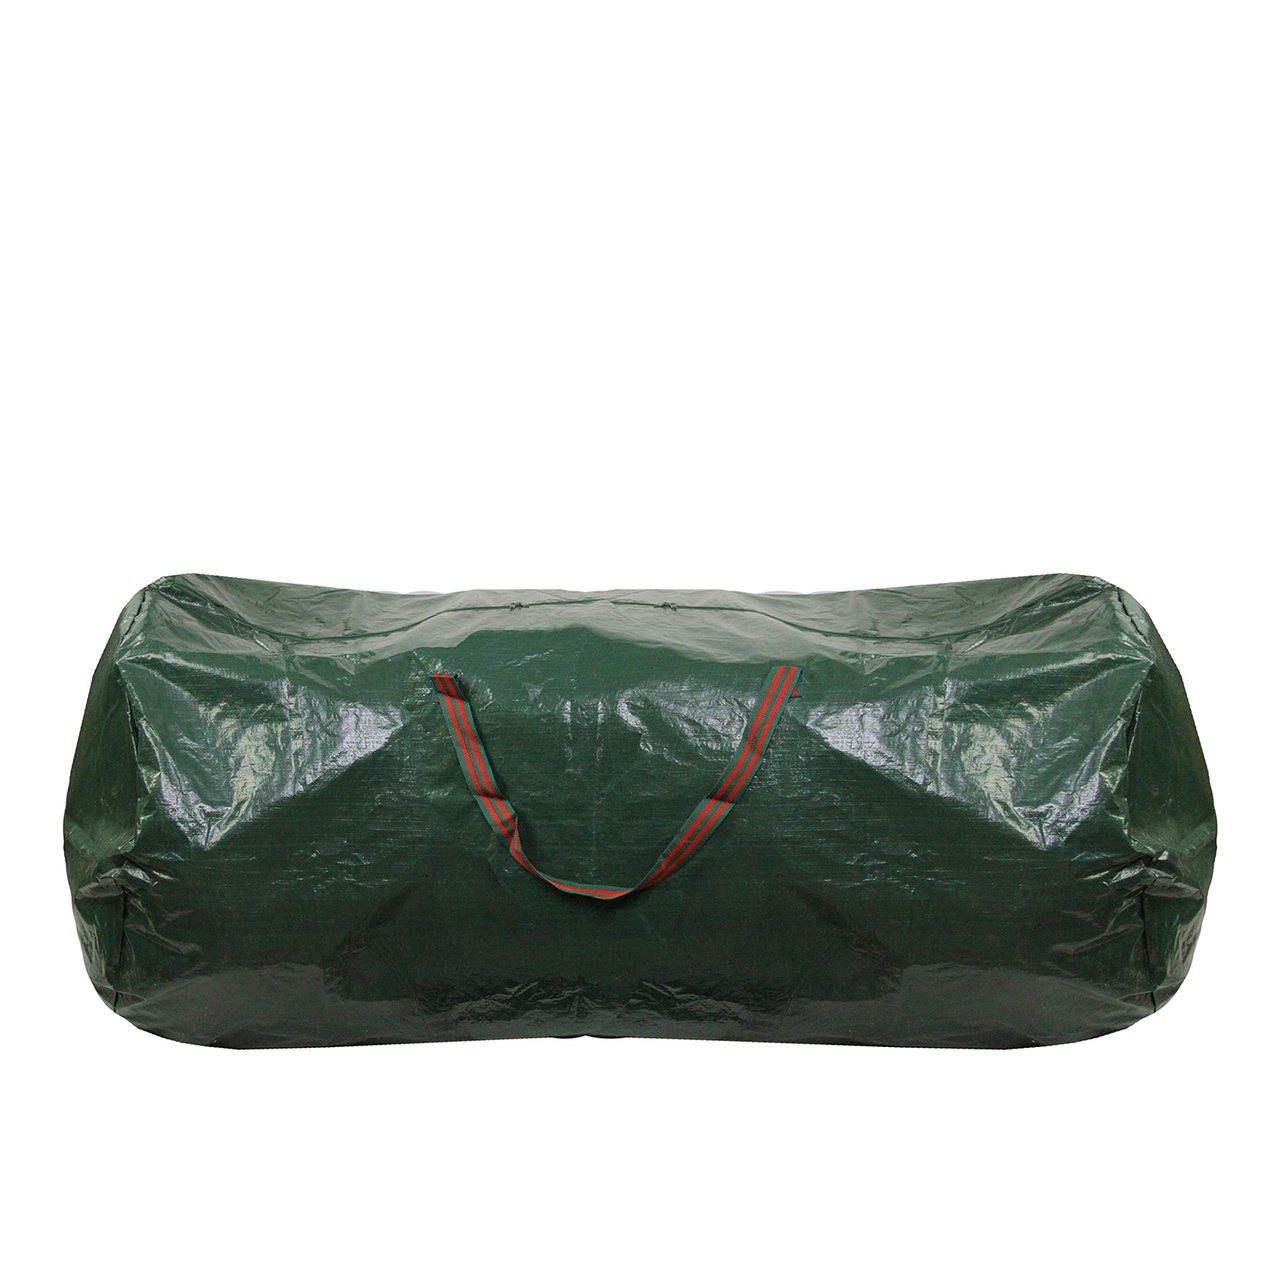 artificial christmas tree storage bag fits up to a 9 tree 32283111